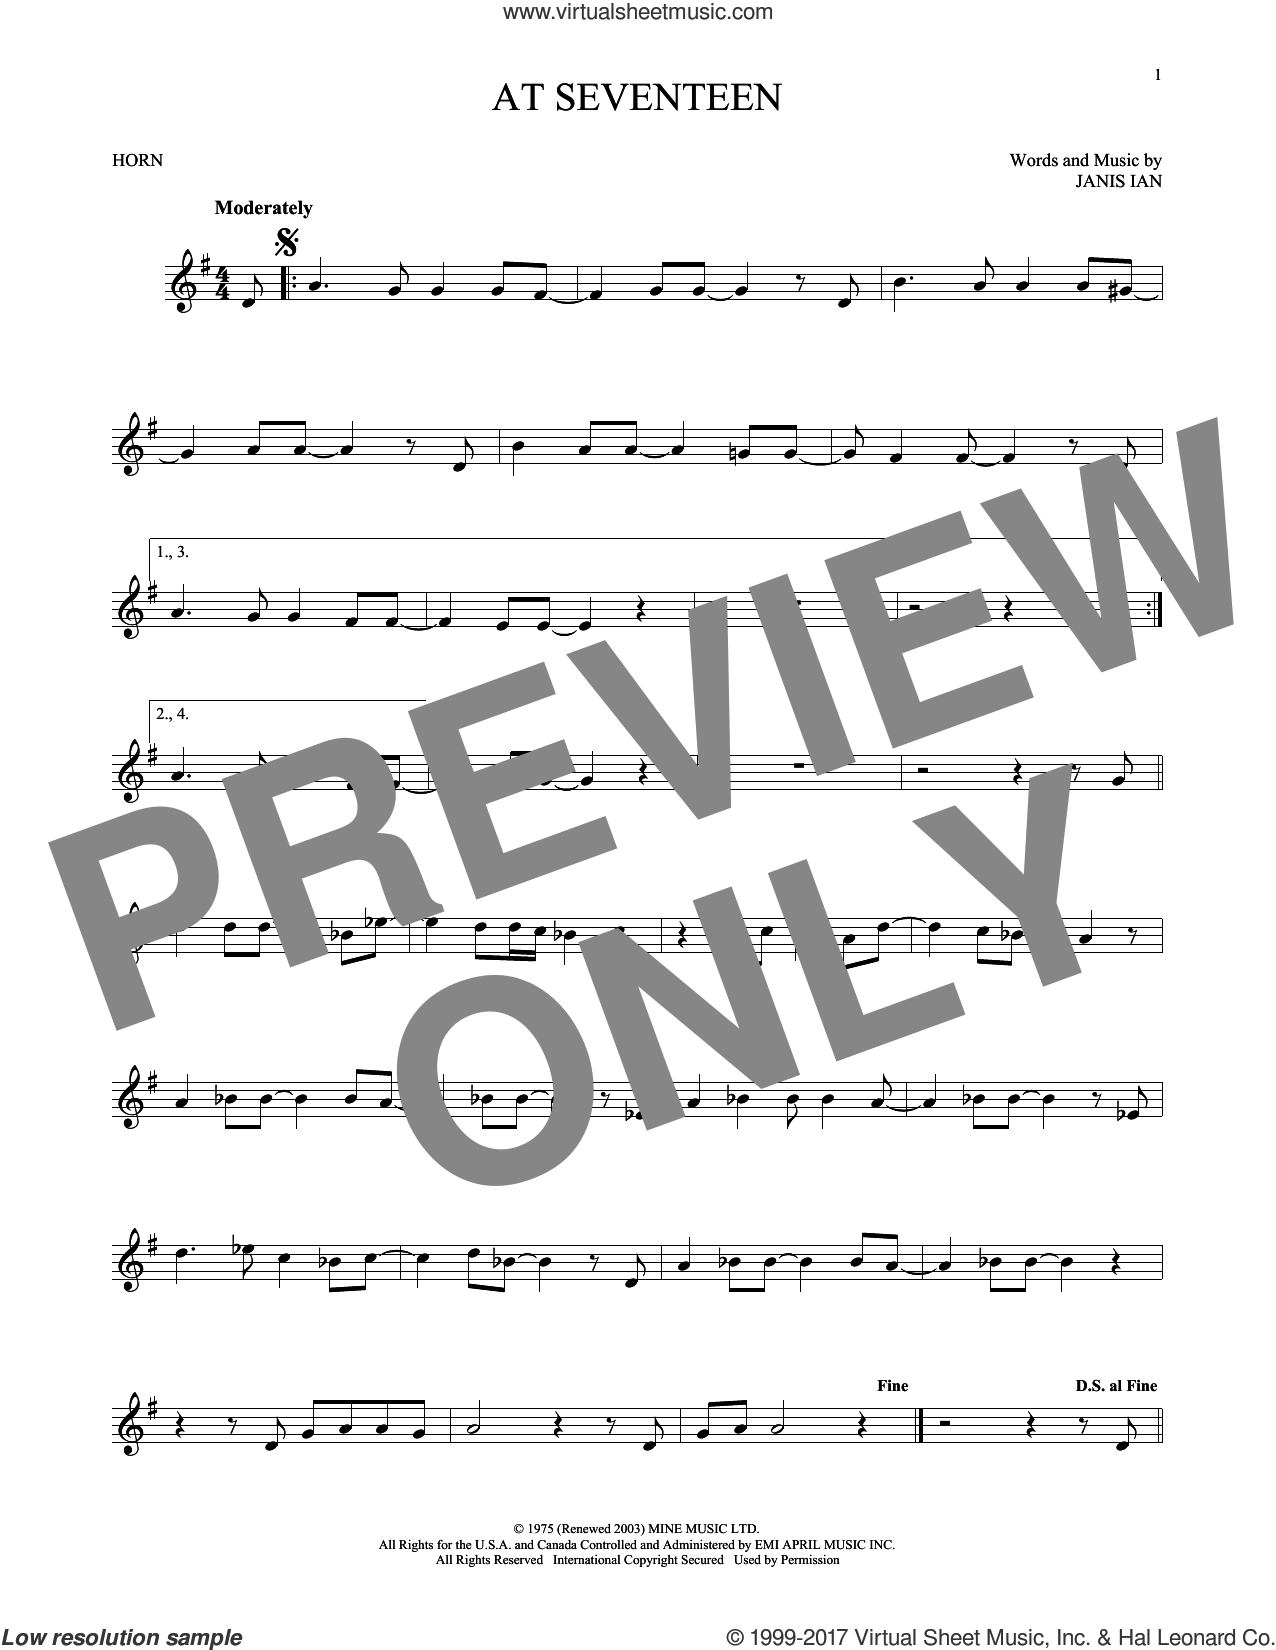 At Seventeen sheet music for horn solo by Janis Ian, intermediate skill level